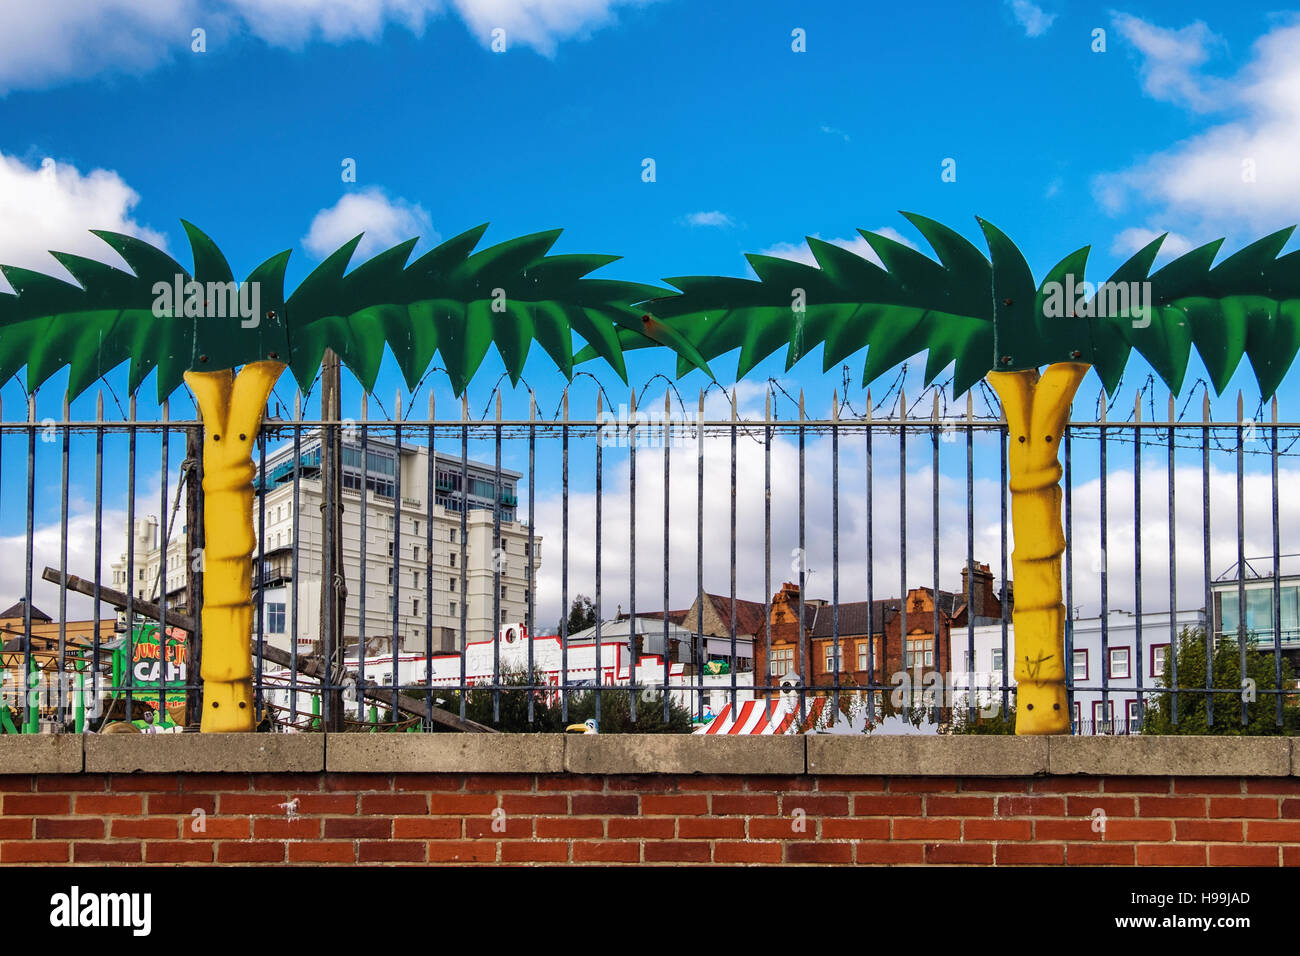 Palm trees and barbed wire fence of 'Adventure Island' Amusement Park & Funfair. Southend-on-sea, Essex,England - Stock Image